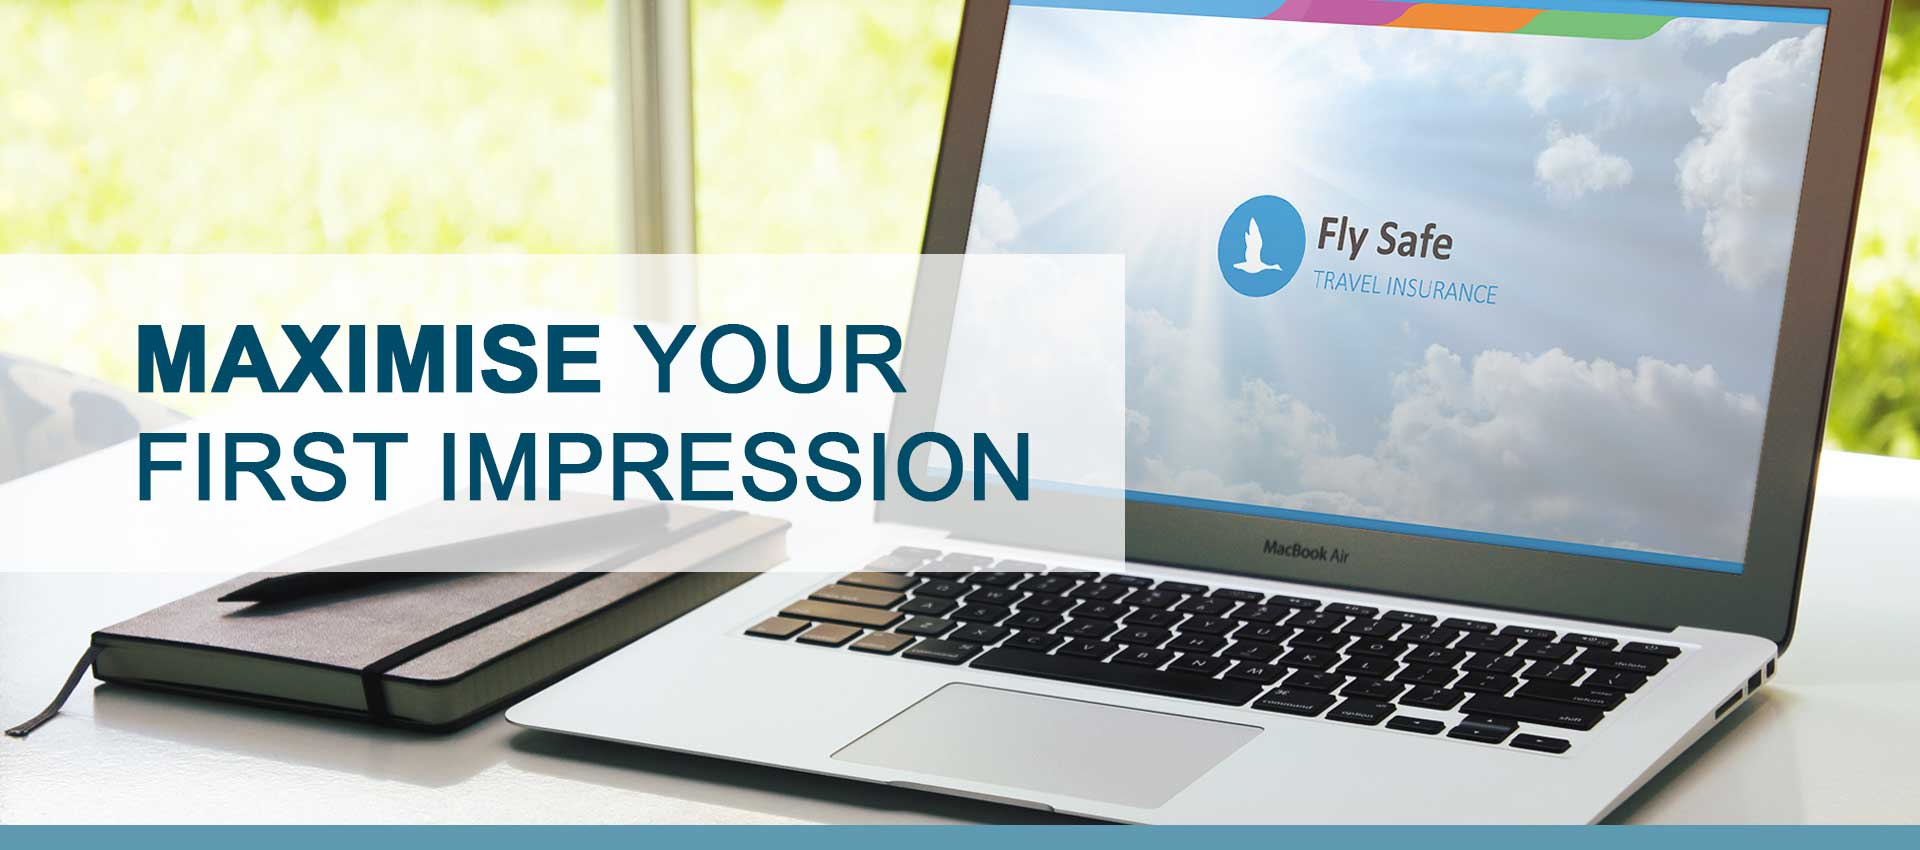 Maximise your first impression